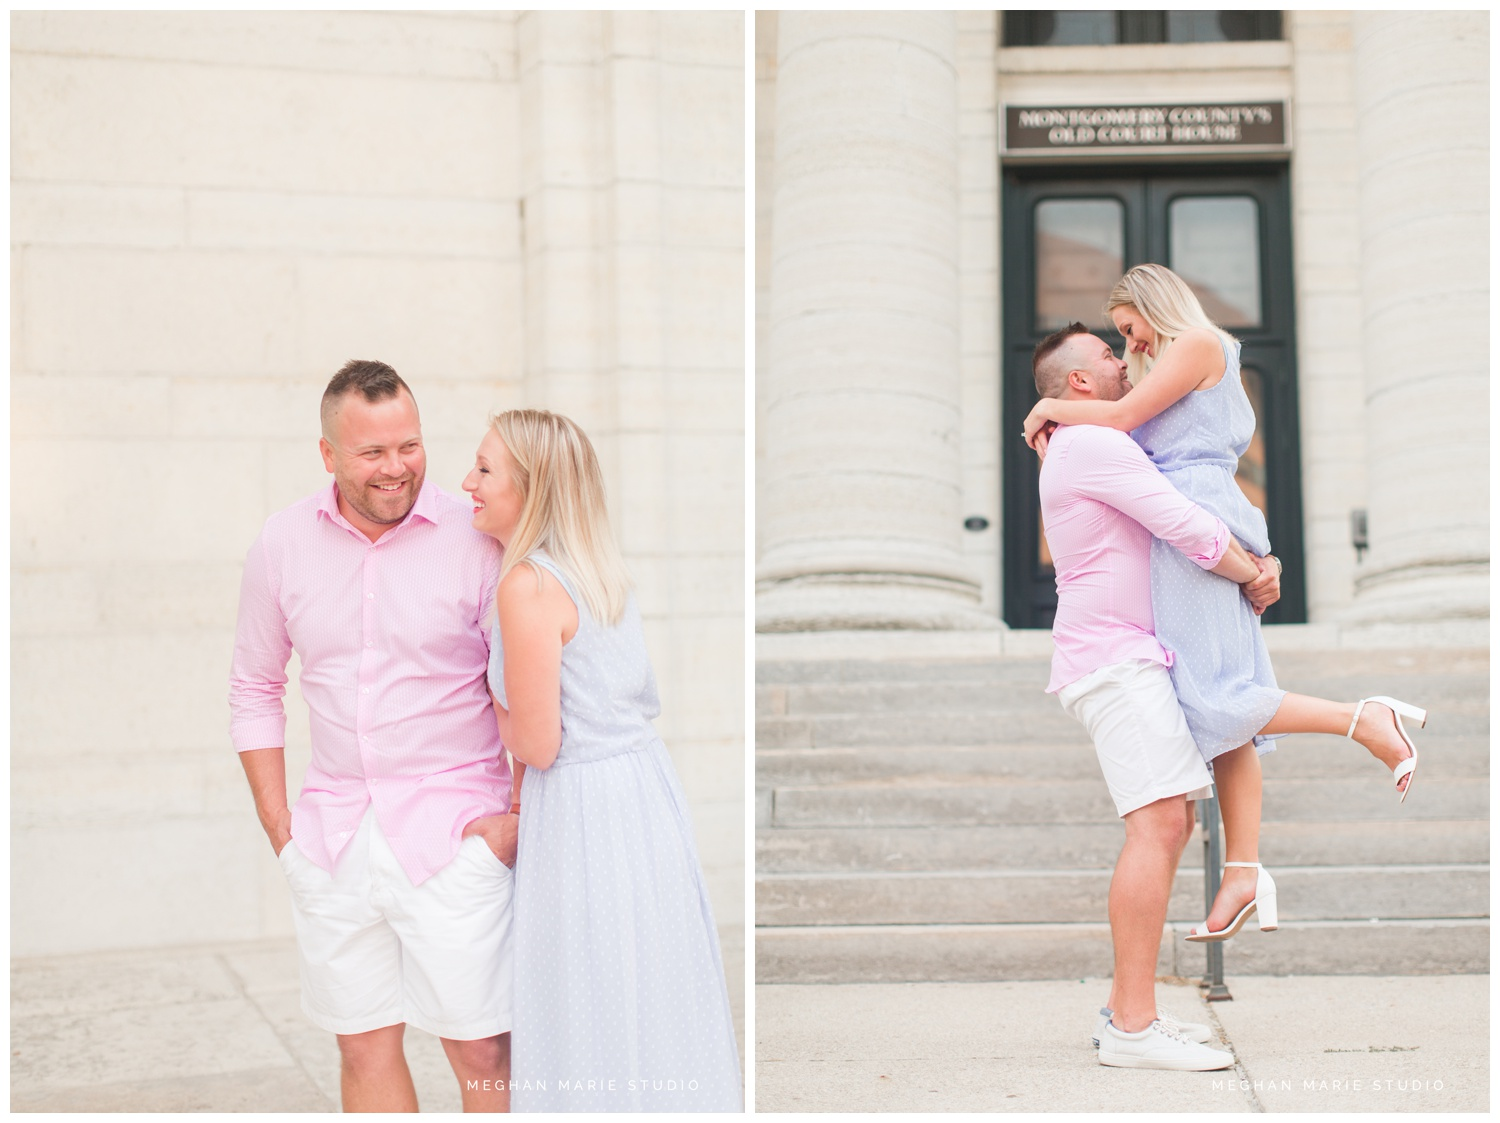 meghan marie studio ohio dayton troy photographer wedding photography engagement alex kaila family honeycreek preserve champagne downtown courthouse urban rural earth toned nature woods barn country city stone fountain elegant_0454.jpg